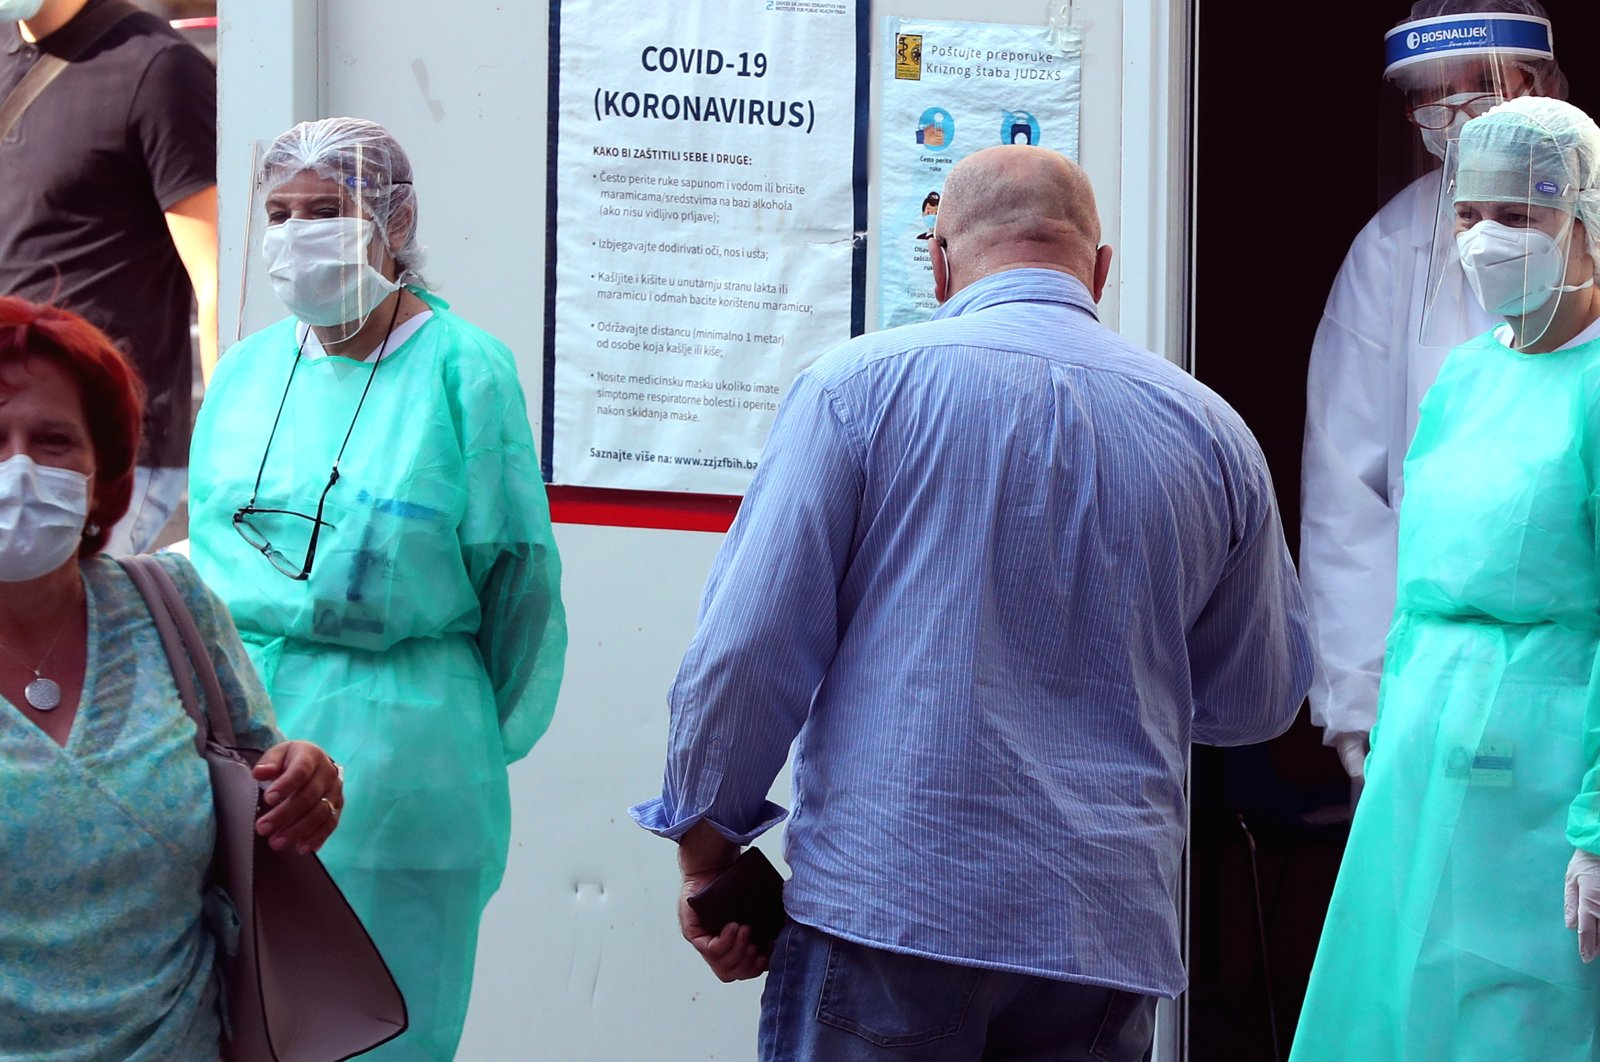 Medical staff attend to people arriving for a coronavirus test, at a hospital in Sarajevo, Bosnia-Herzegovina, Aug. 10, 2020. (EPA Photo)